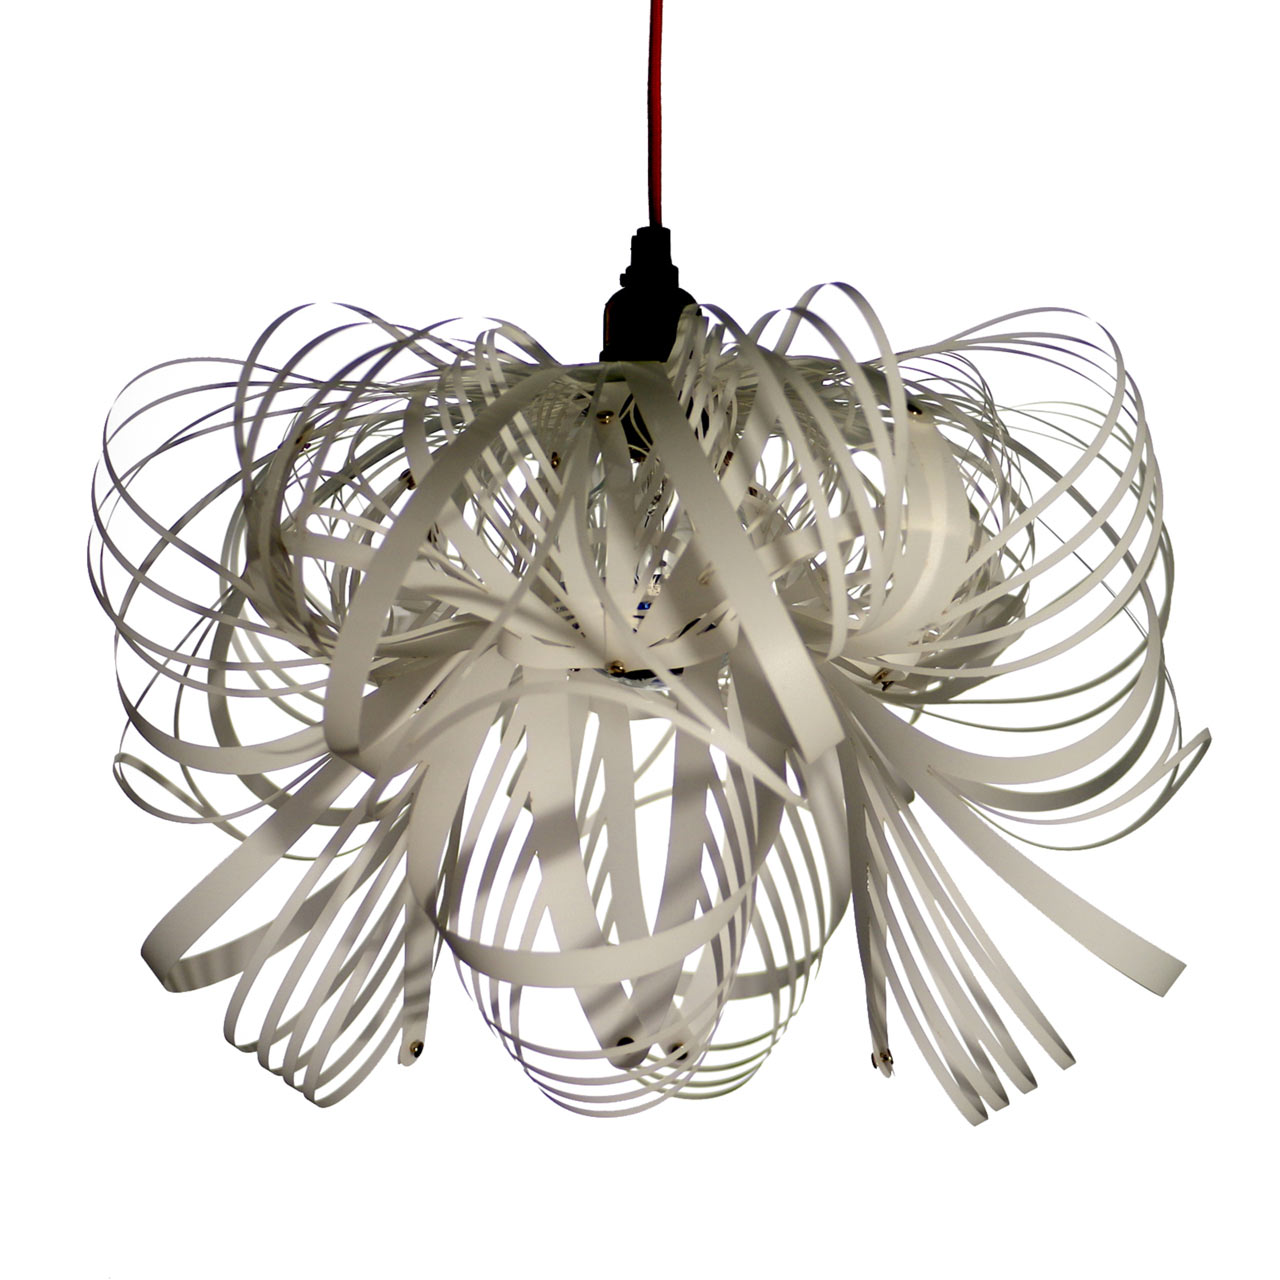 A Lamp that Illustrates Magnetic Field Lines of Earth